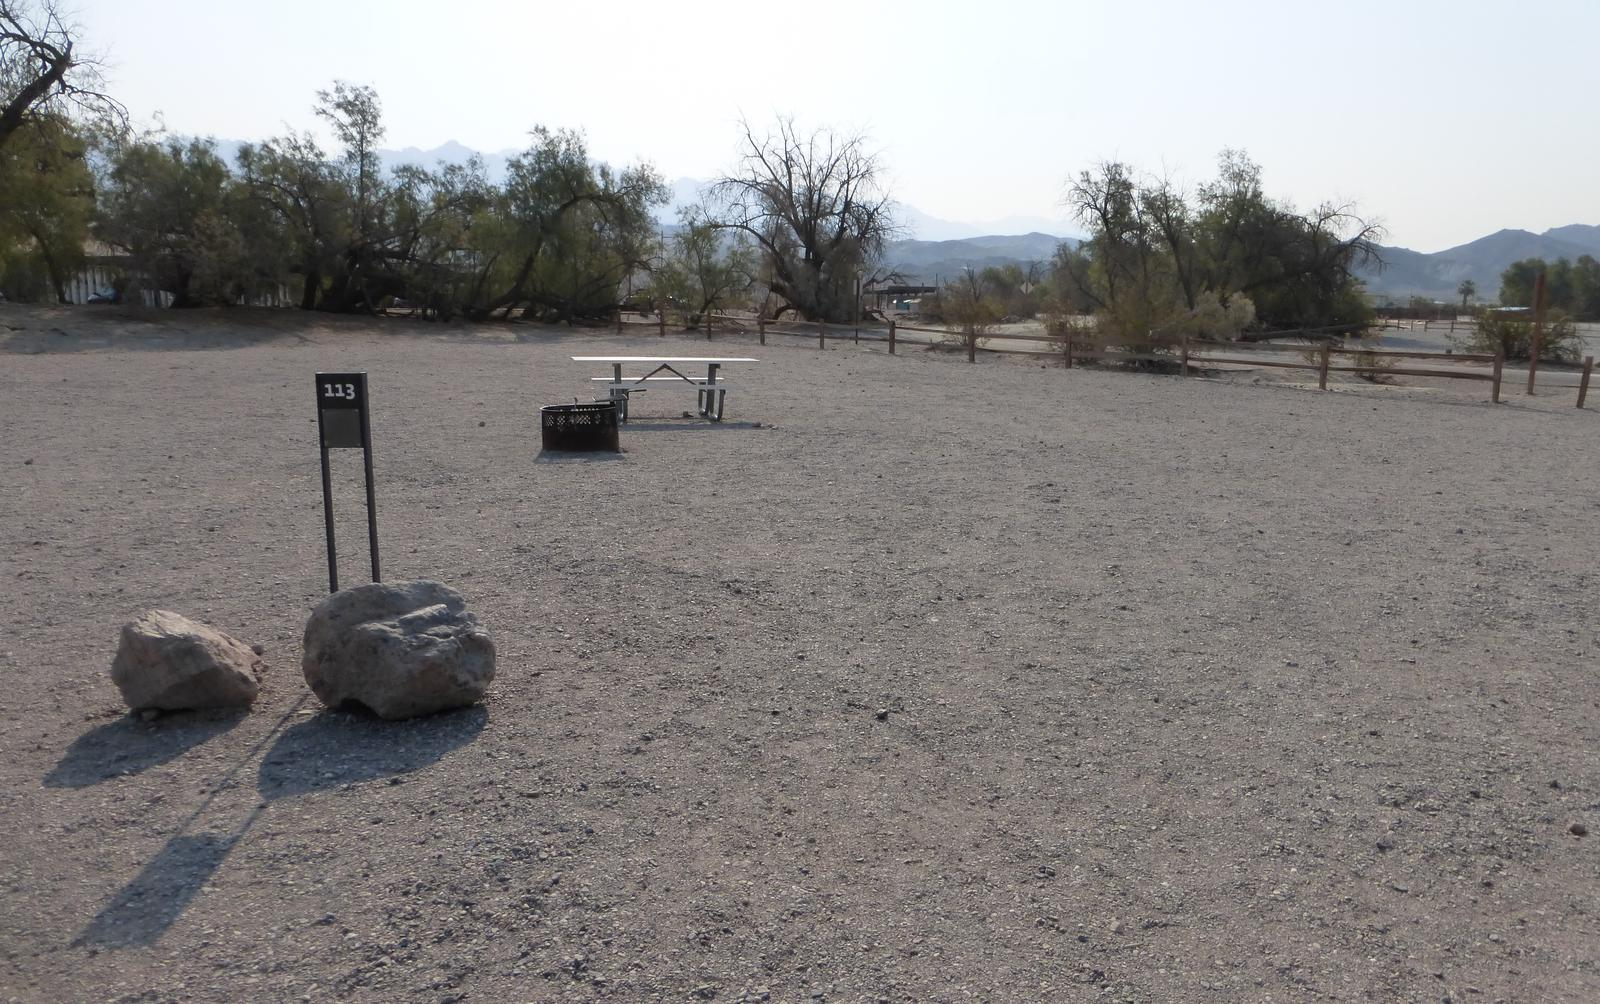 Furnace Creek Campground standard nonelectric site #113 with picnic table and fire ring.